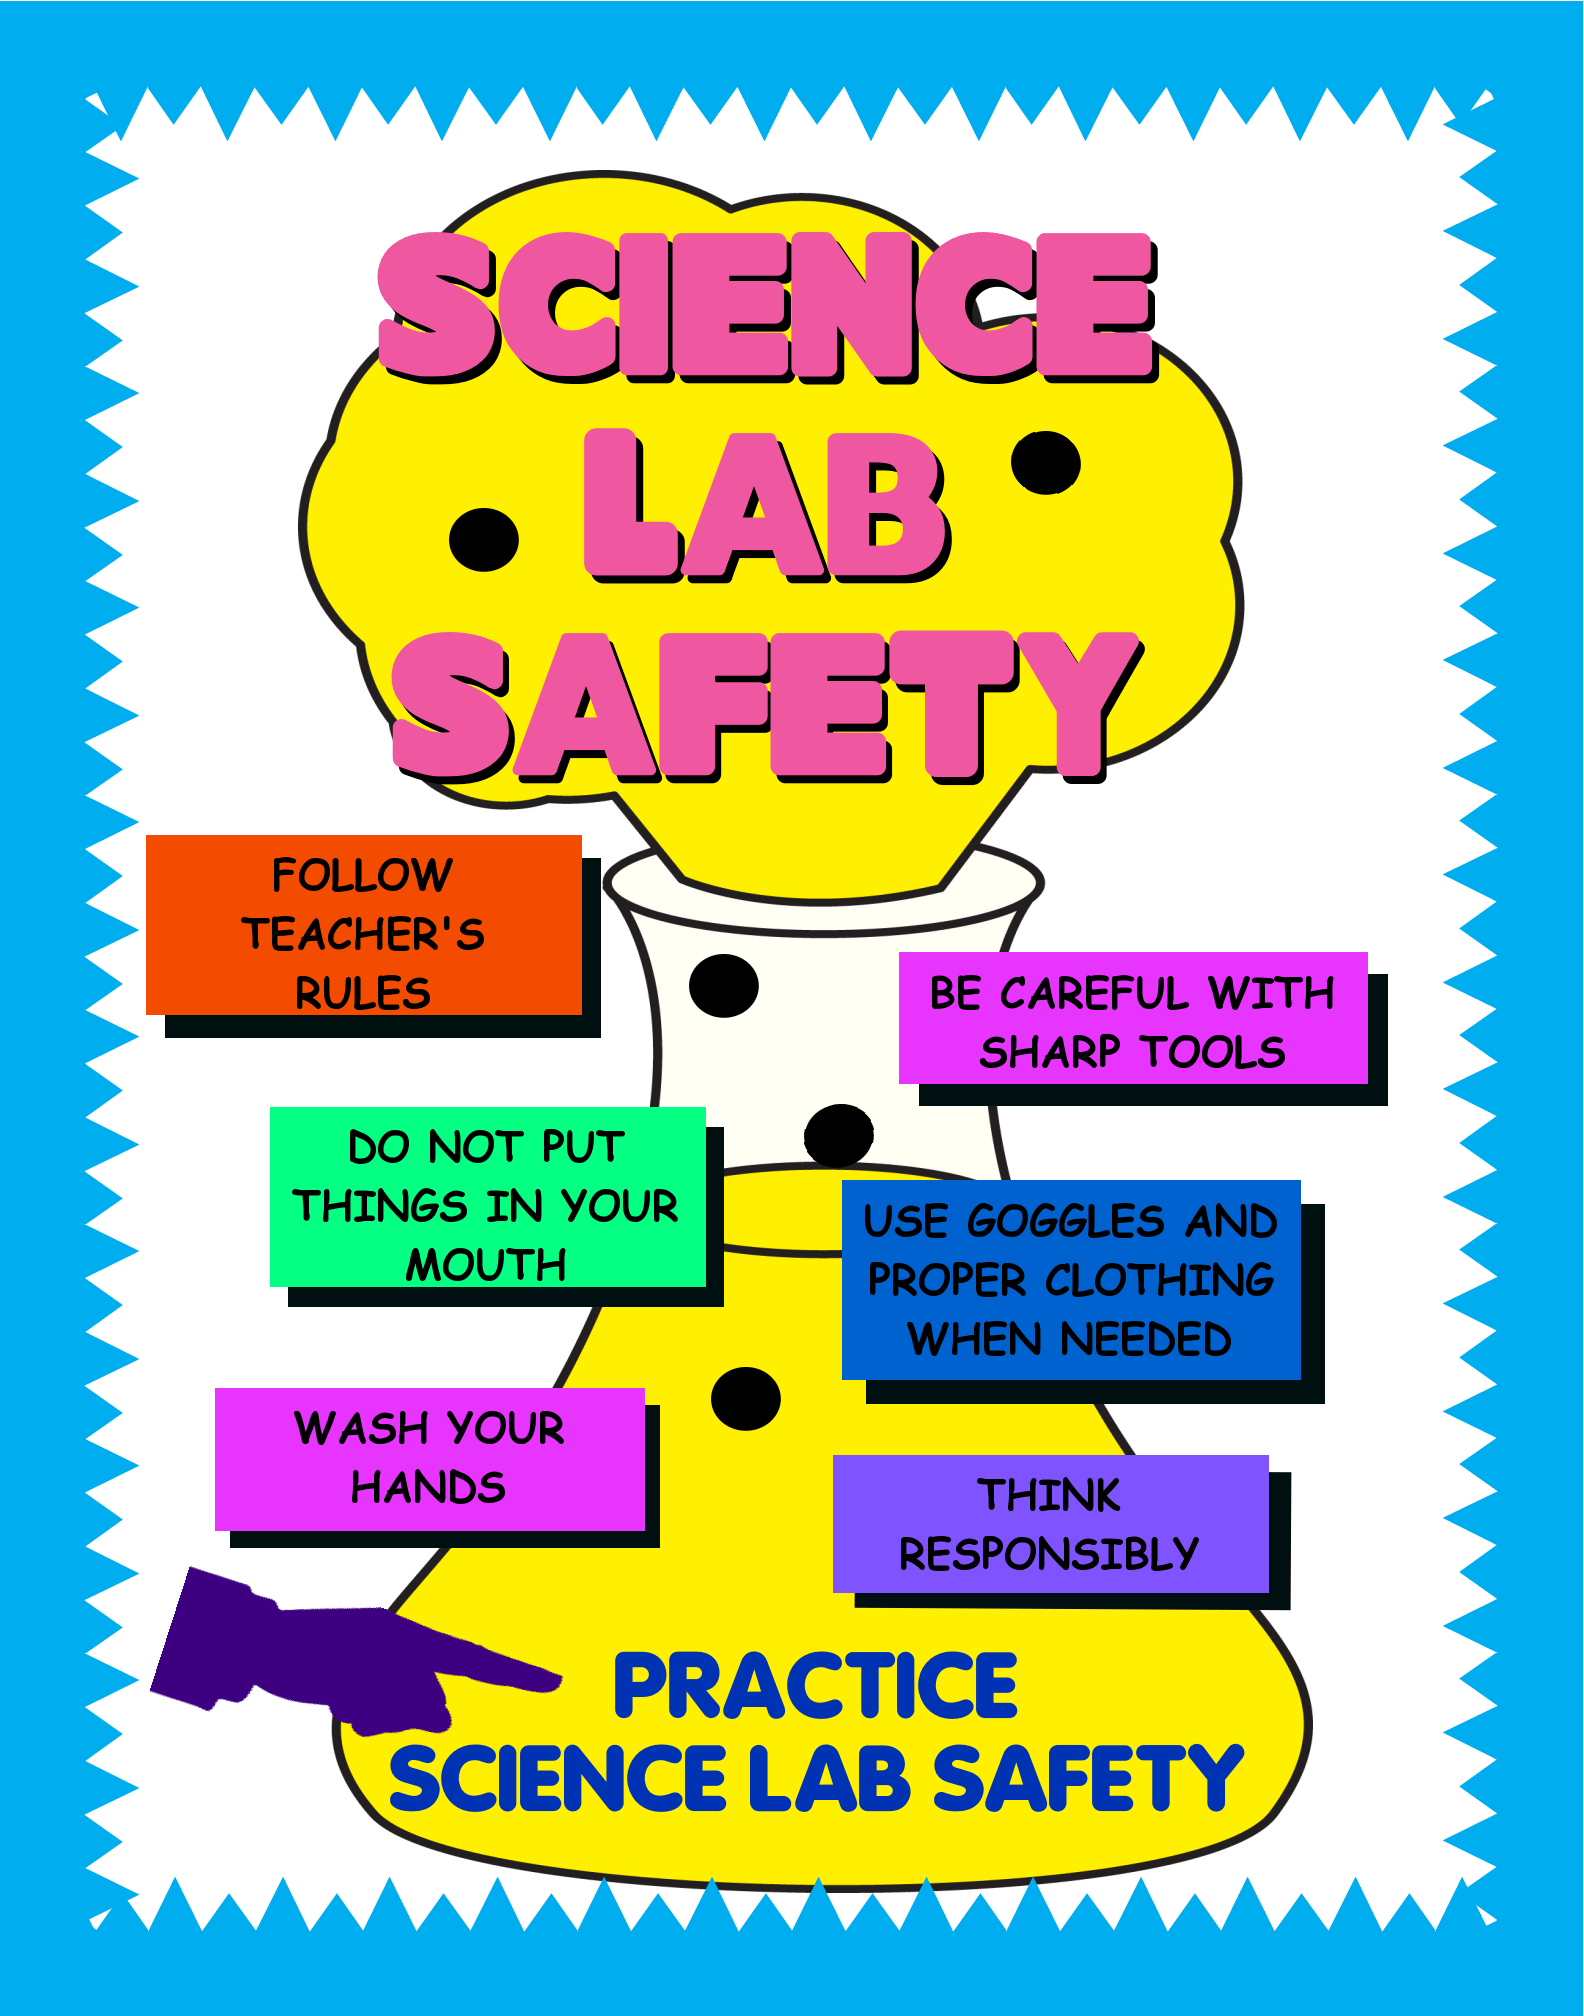 Science Lab Safety is very important! Classroom Poster